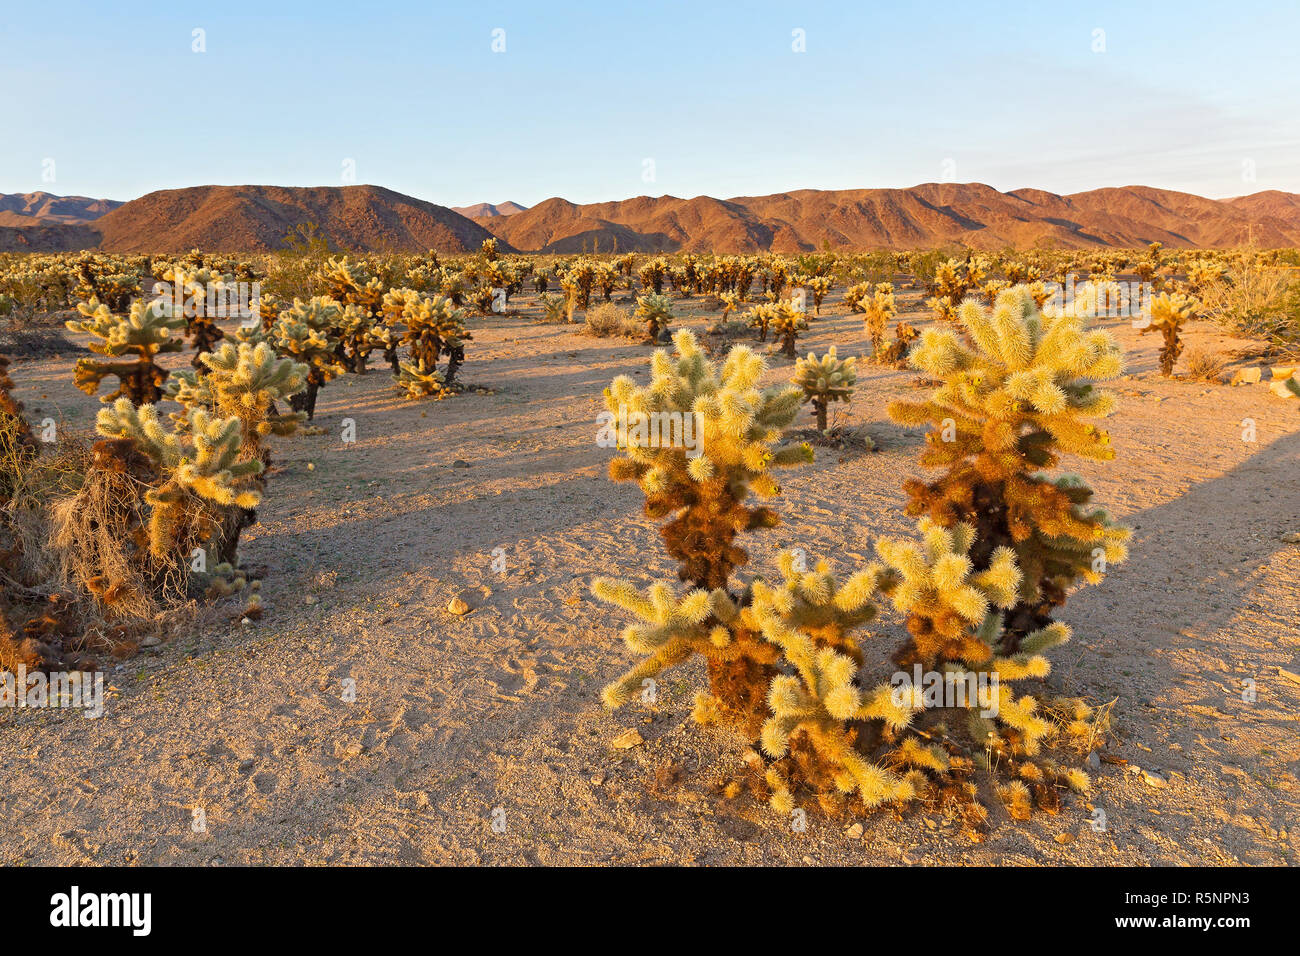 Cholla Cactus Garden surrounded by mountains chain at sunset in Joshua Tree National Park, California USA. Cactus garden landscape dominated by thorny - Stock Image